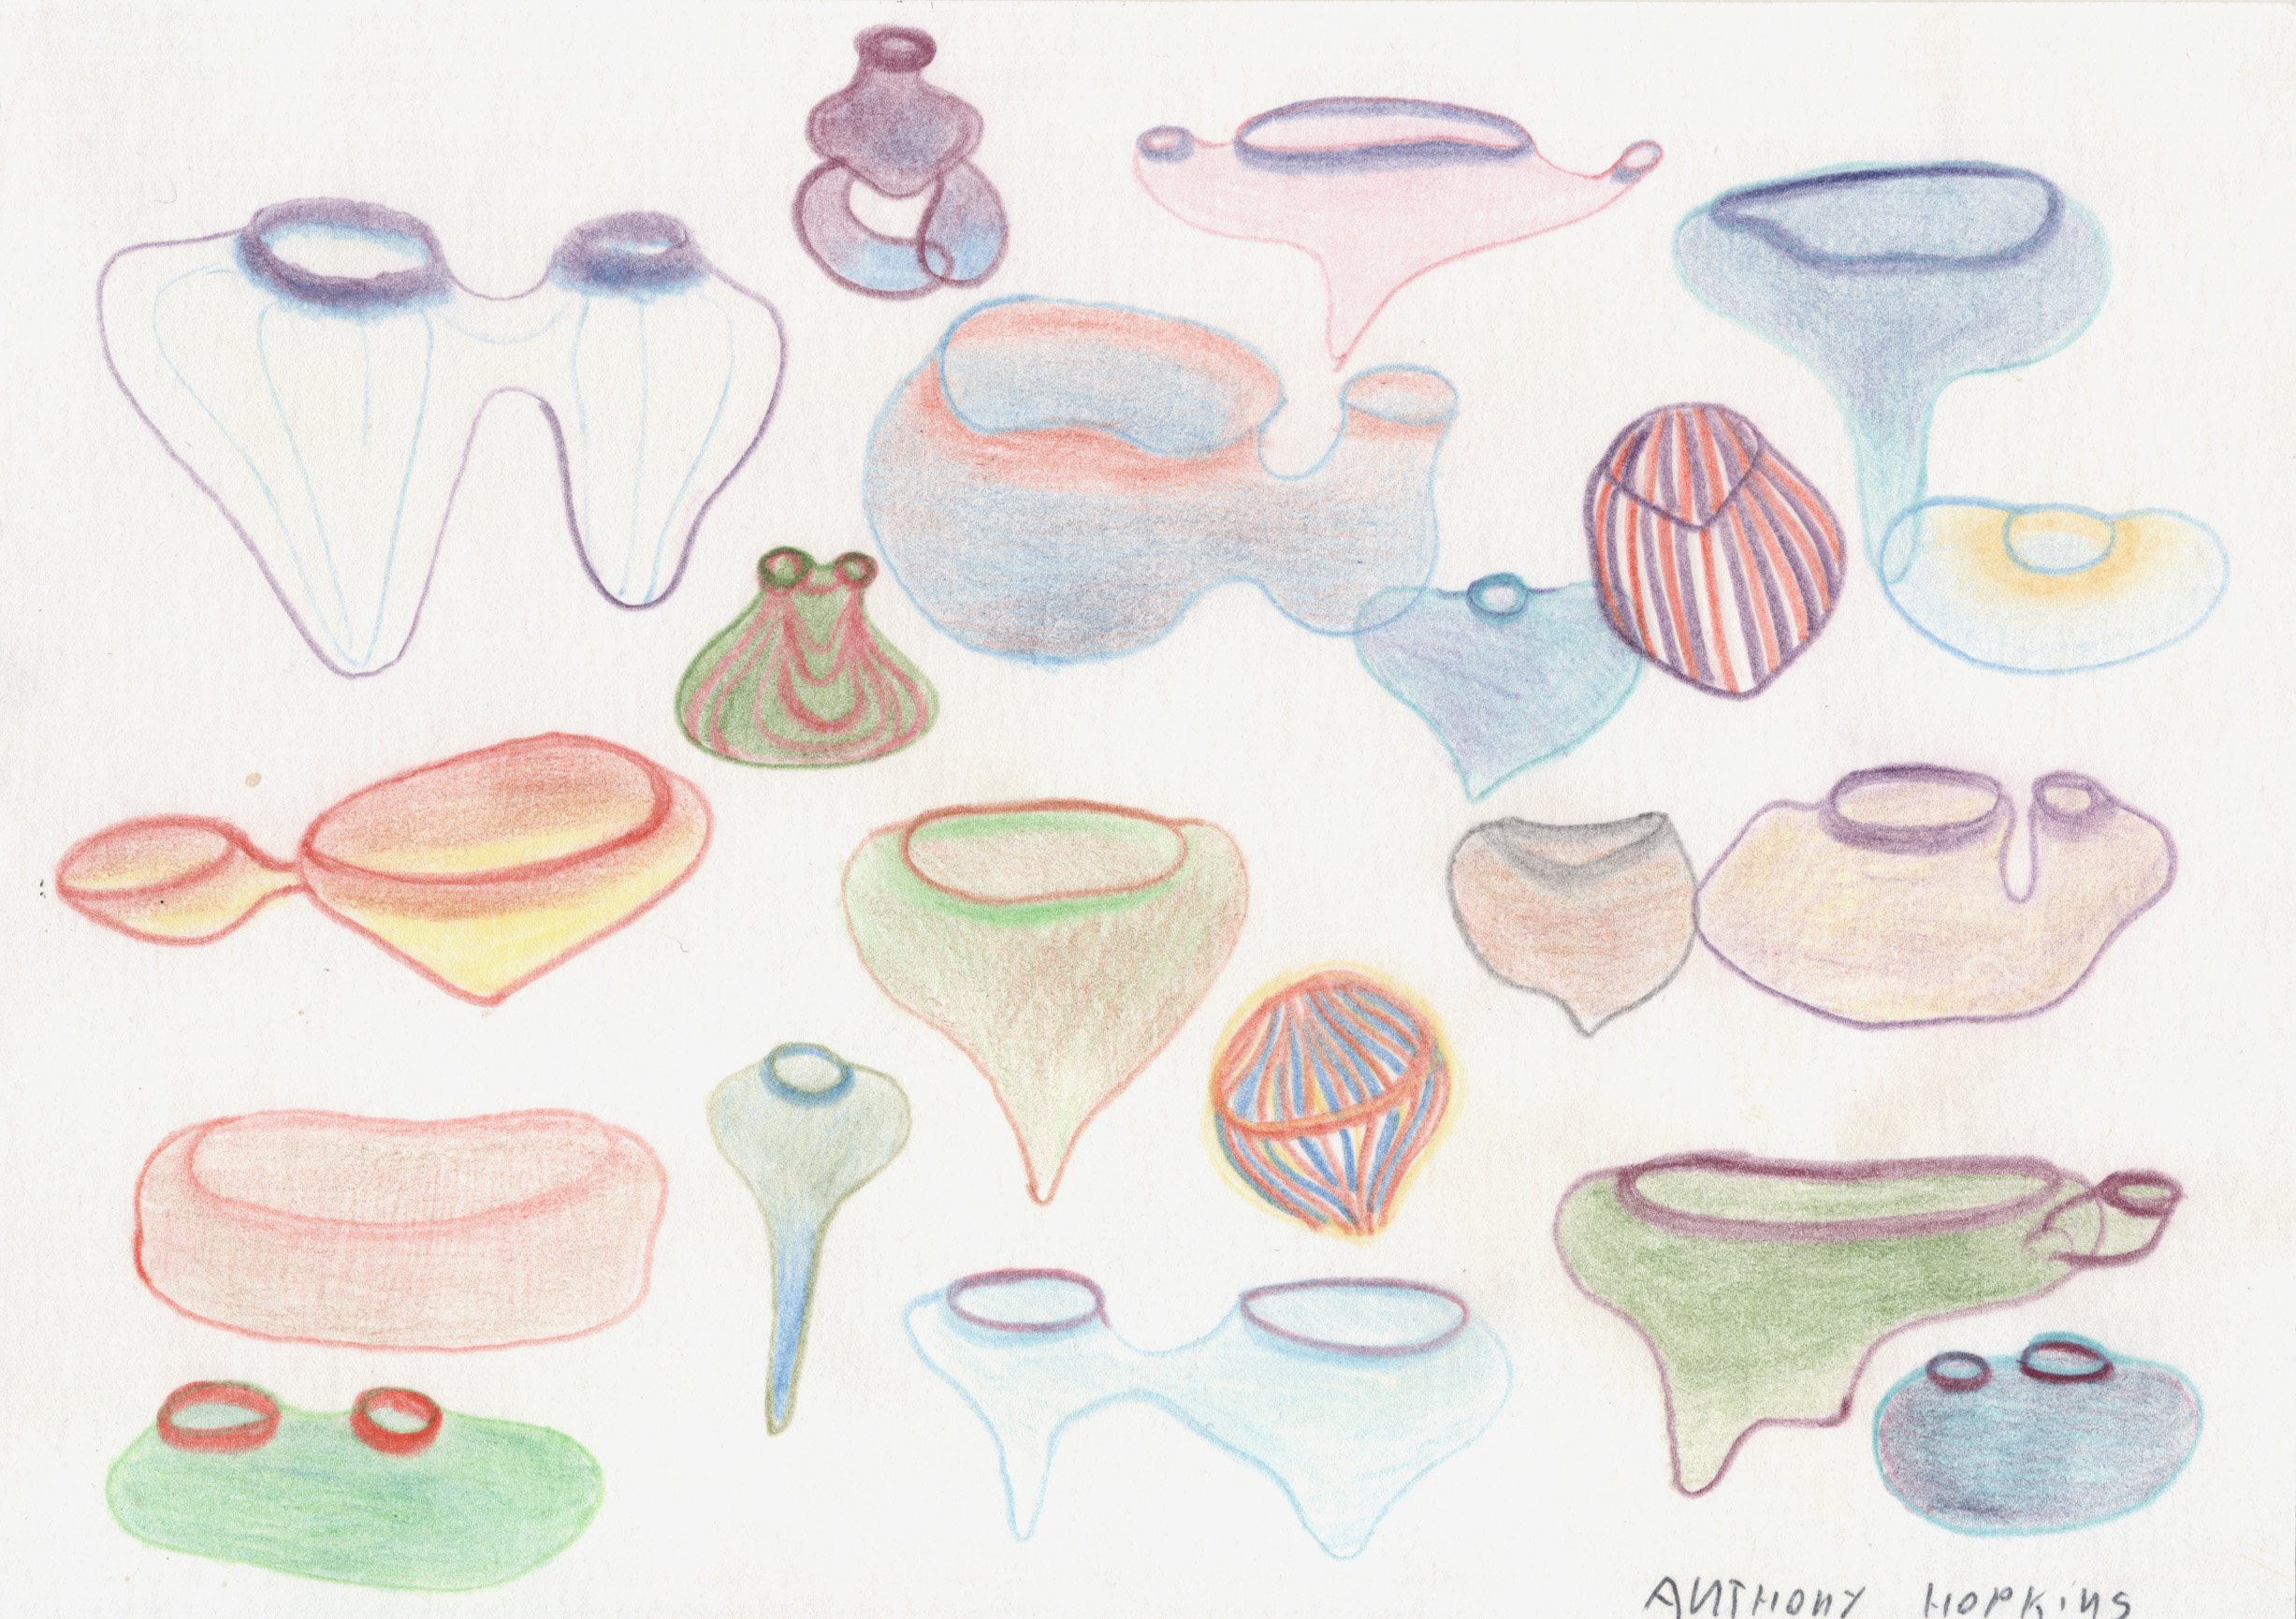 Anthony Hopkins    Rainforest Lights 4 (#147)  , 1999 Colored pencil/paper 6 x 8.25 in / 15.2 x 21.0 cm / AH 63